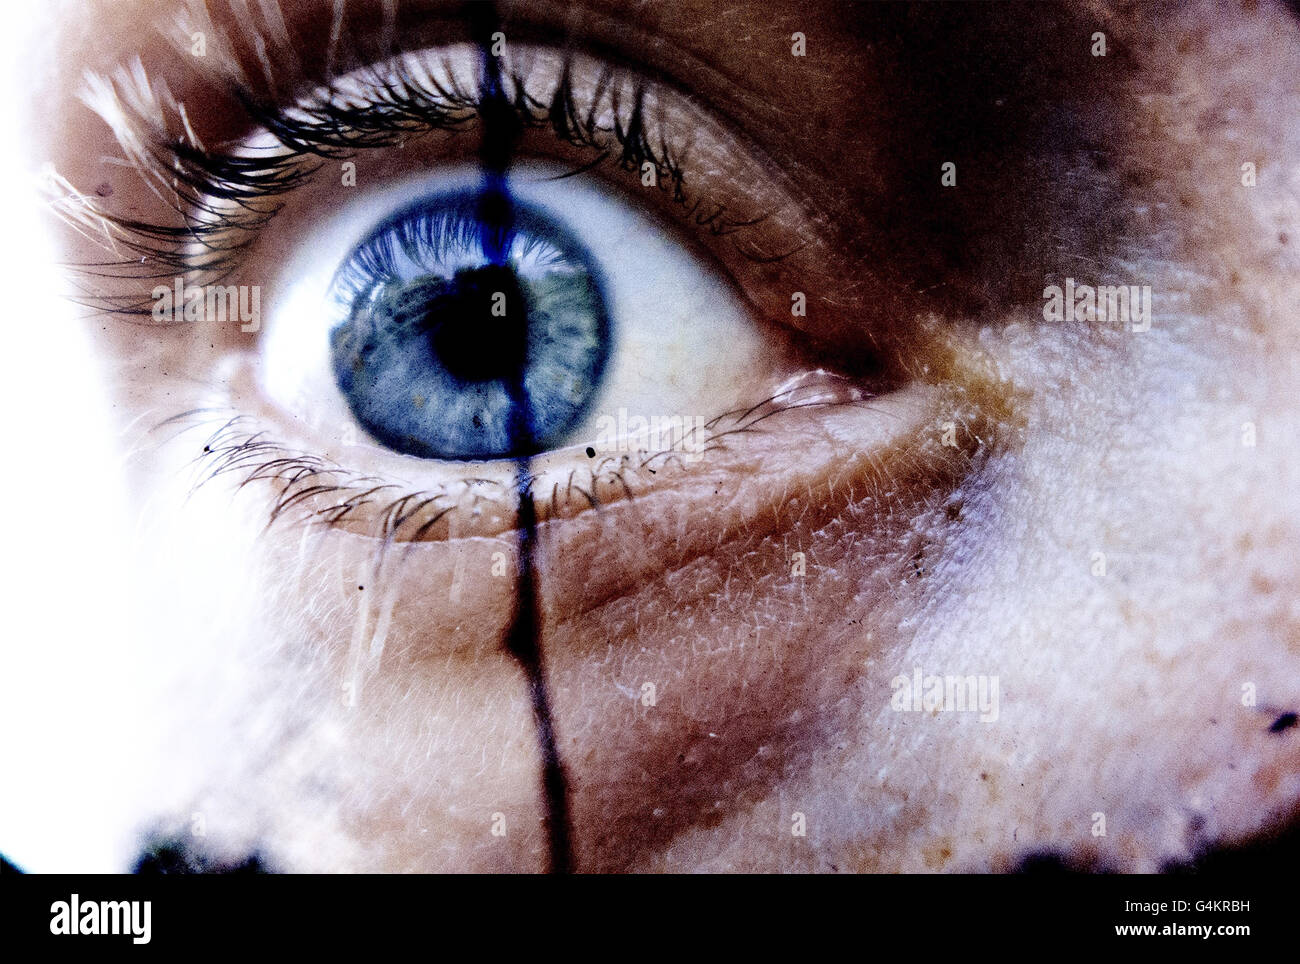 Intense close-up of an eyeball. Reminiscent of a horror film... - Stock Image